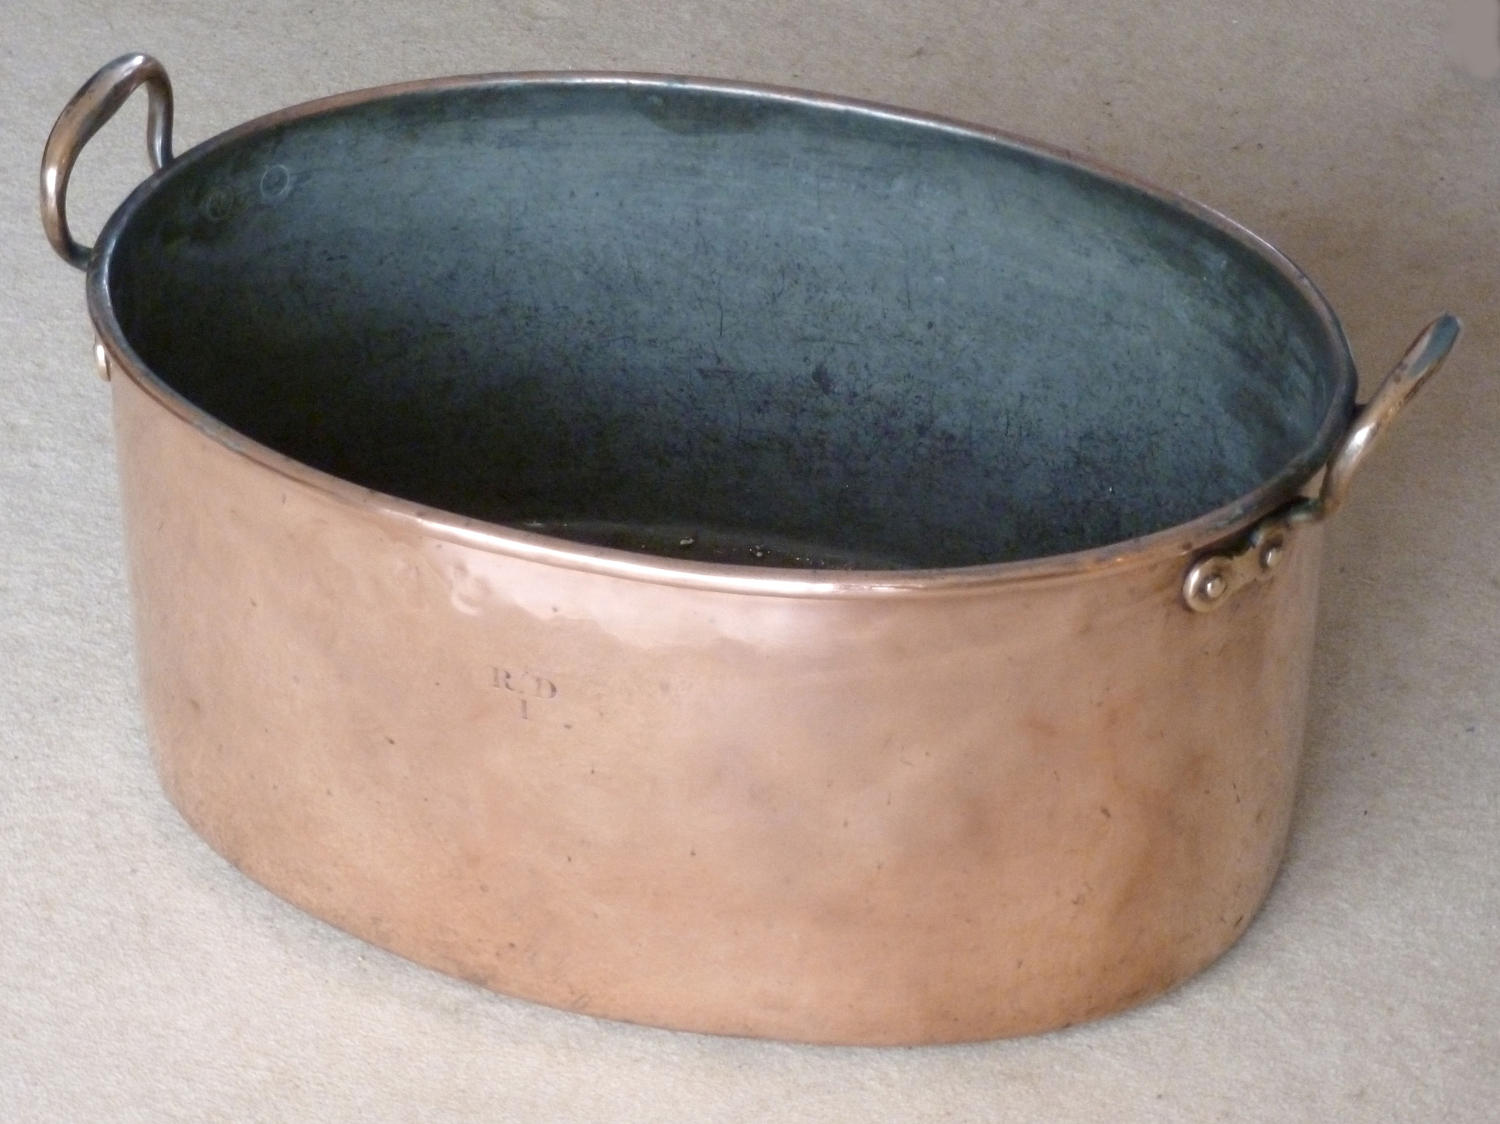 5134 An oval copper braising pan (or wine cooler if you prefer!)